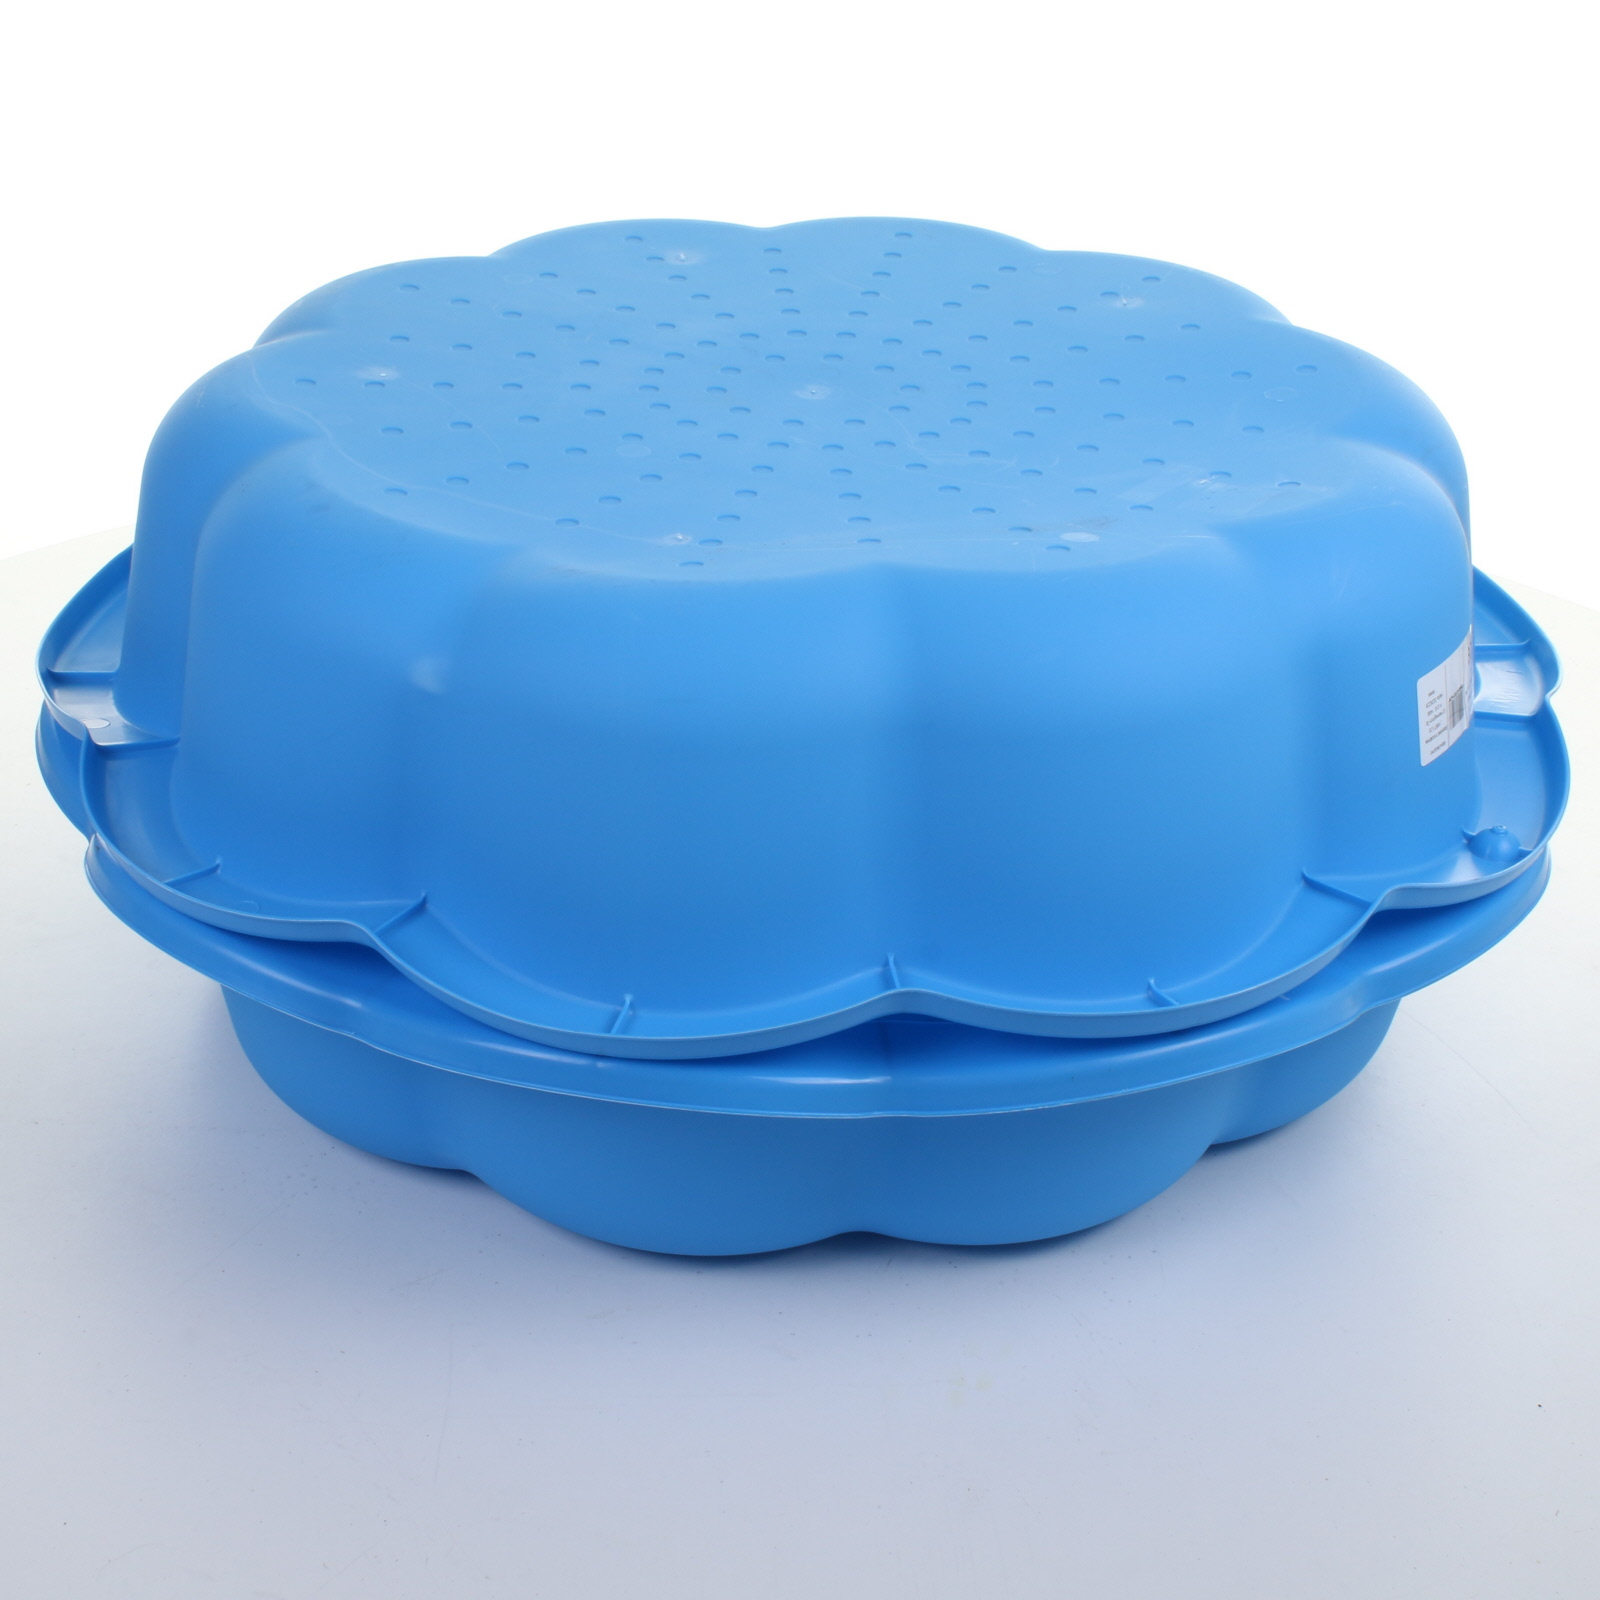 Sand pit paddling pool blue plastic outdoor garden kids for Plastic garden pool